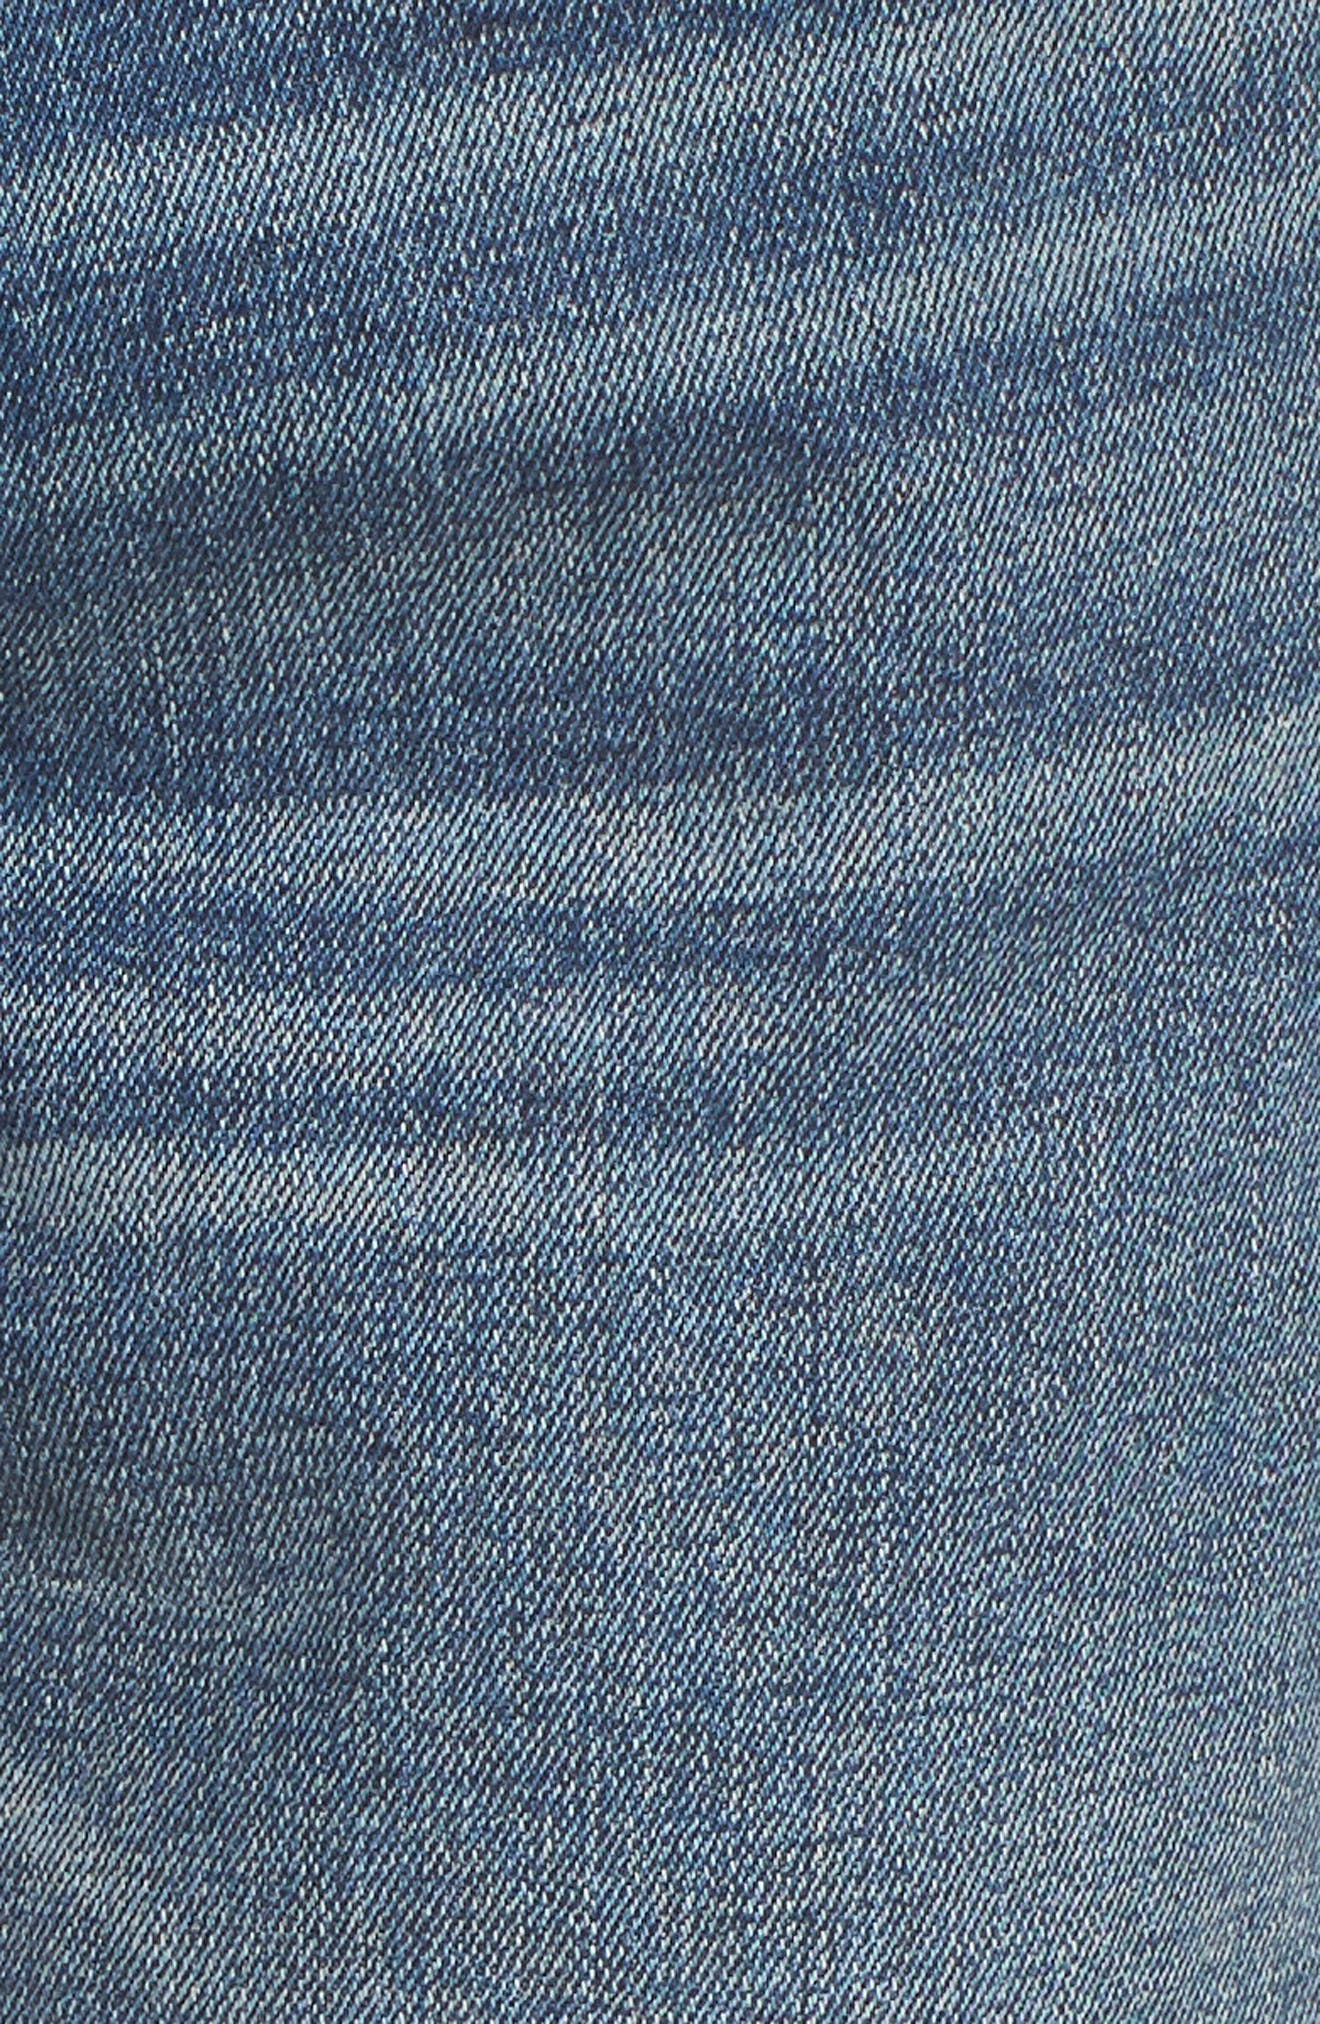 Friday Distressed Tapered Boyfriend Jeans,                             Alternate thumbnail 3, color,                             Medium Wash